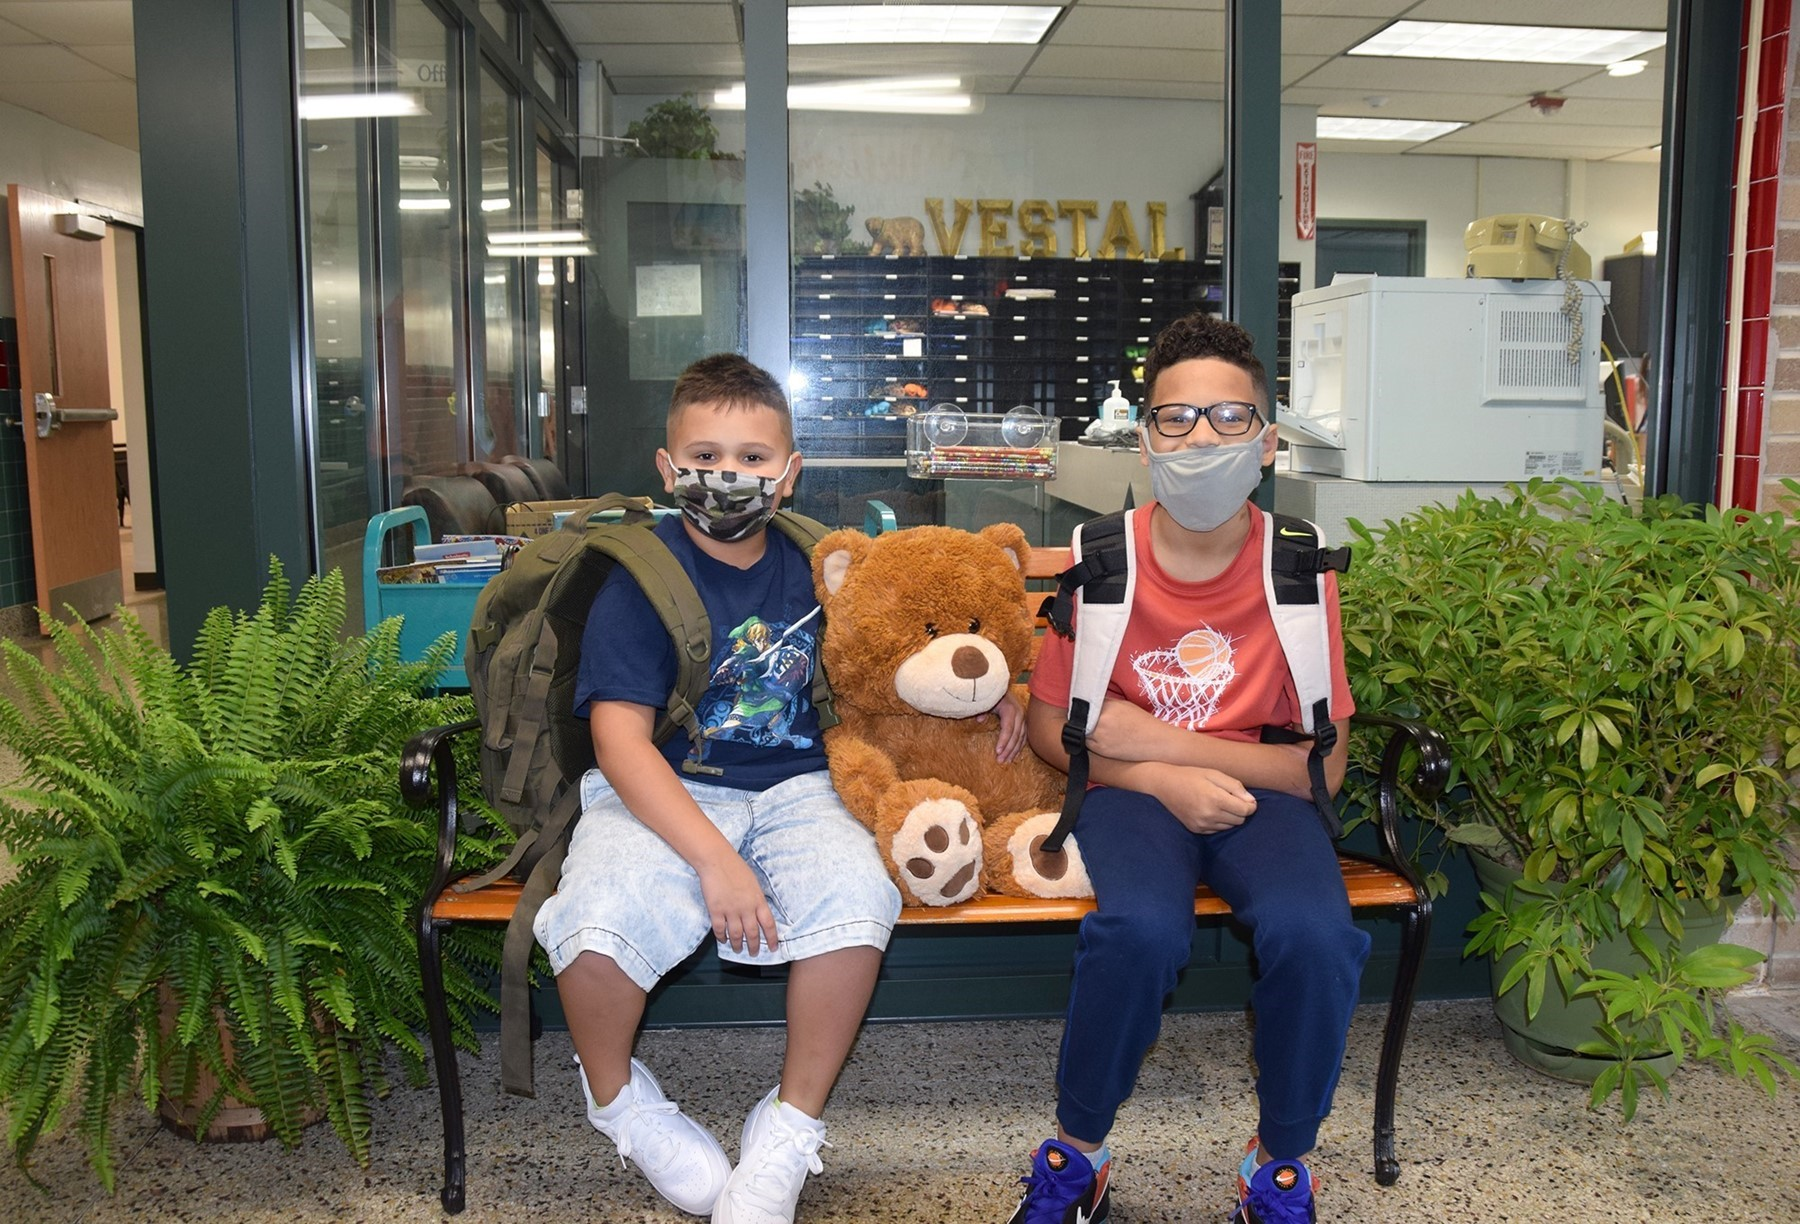 Two boys sit on either side of a stuffed brown bear on the bench in the Glenwood Elementary School lobby on the first day of school 2021.